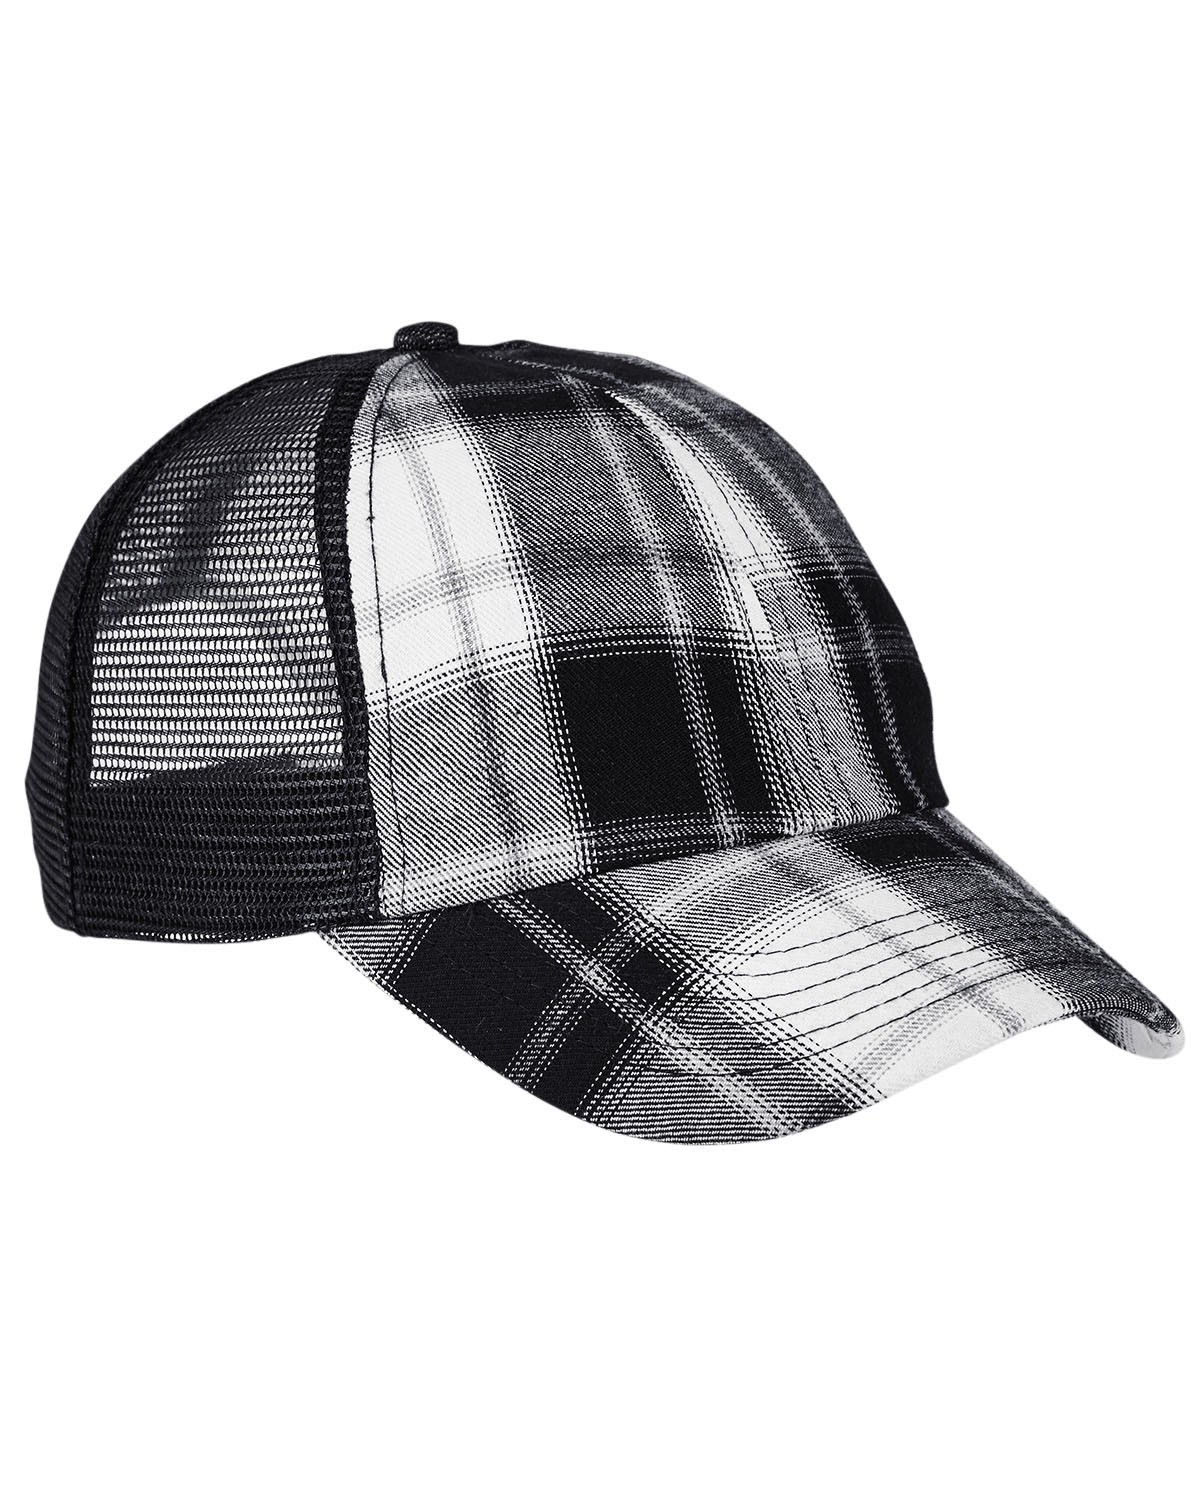 VB101 Adams WHITE/ BLK PLAID